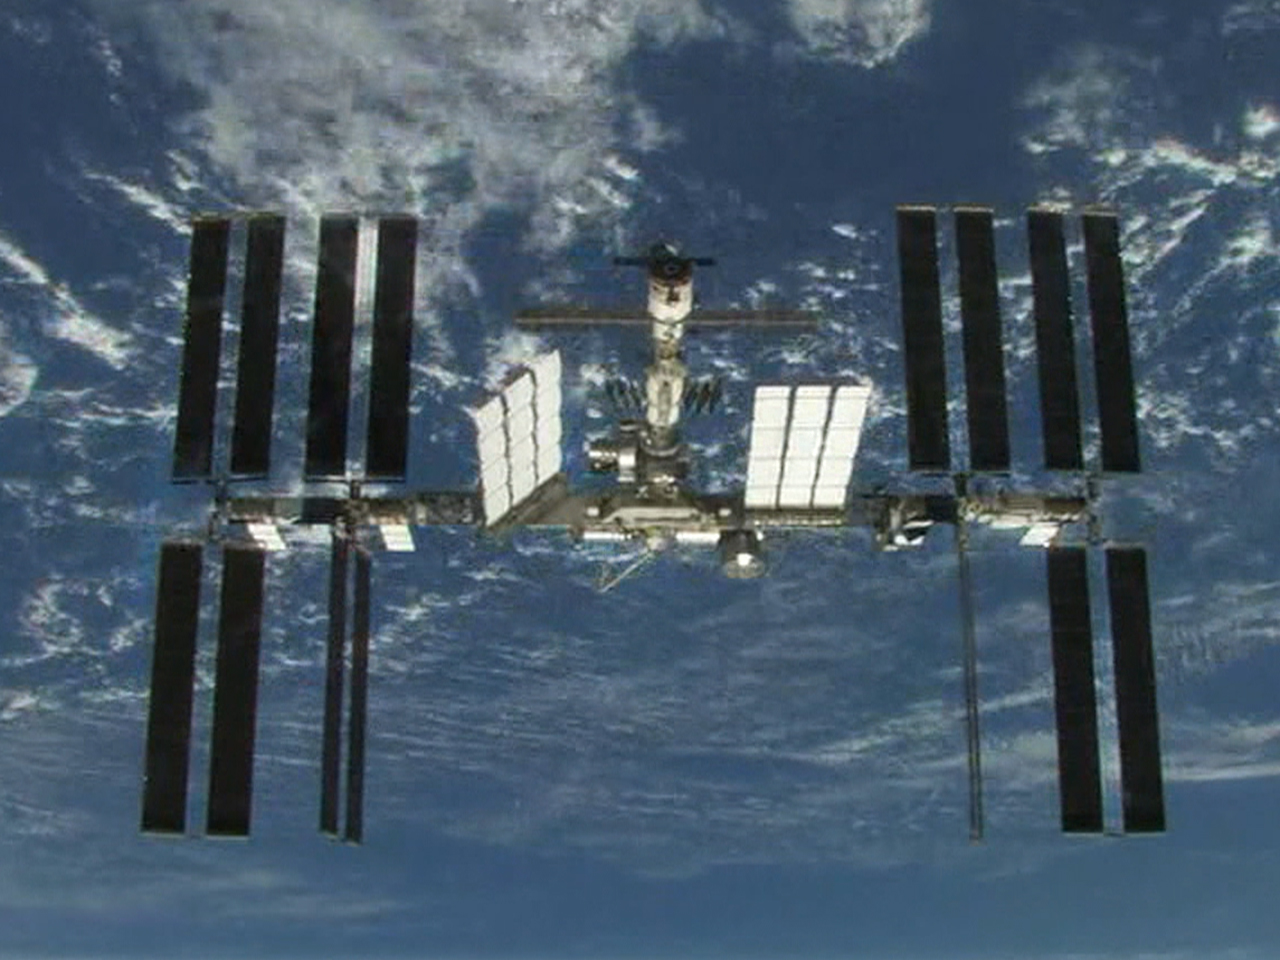 Space station leaking vital coolant above Earth - TODAY.com